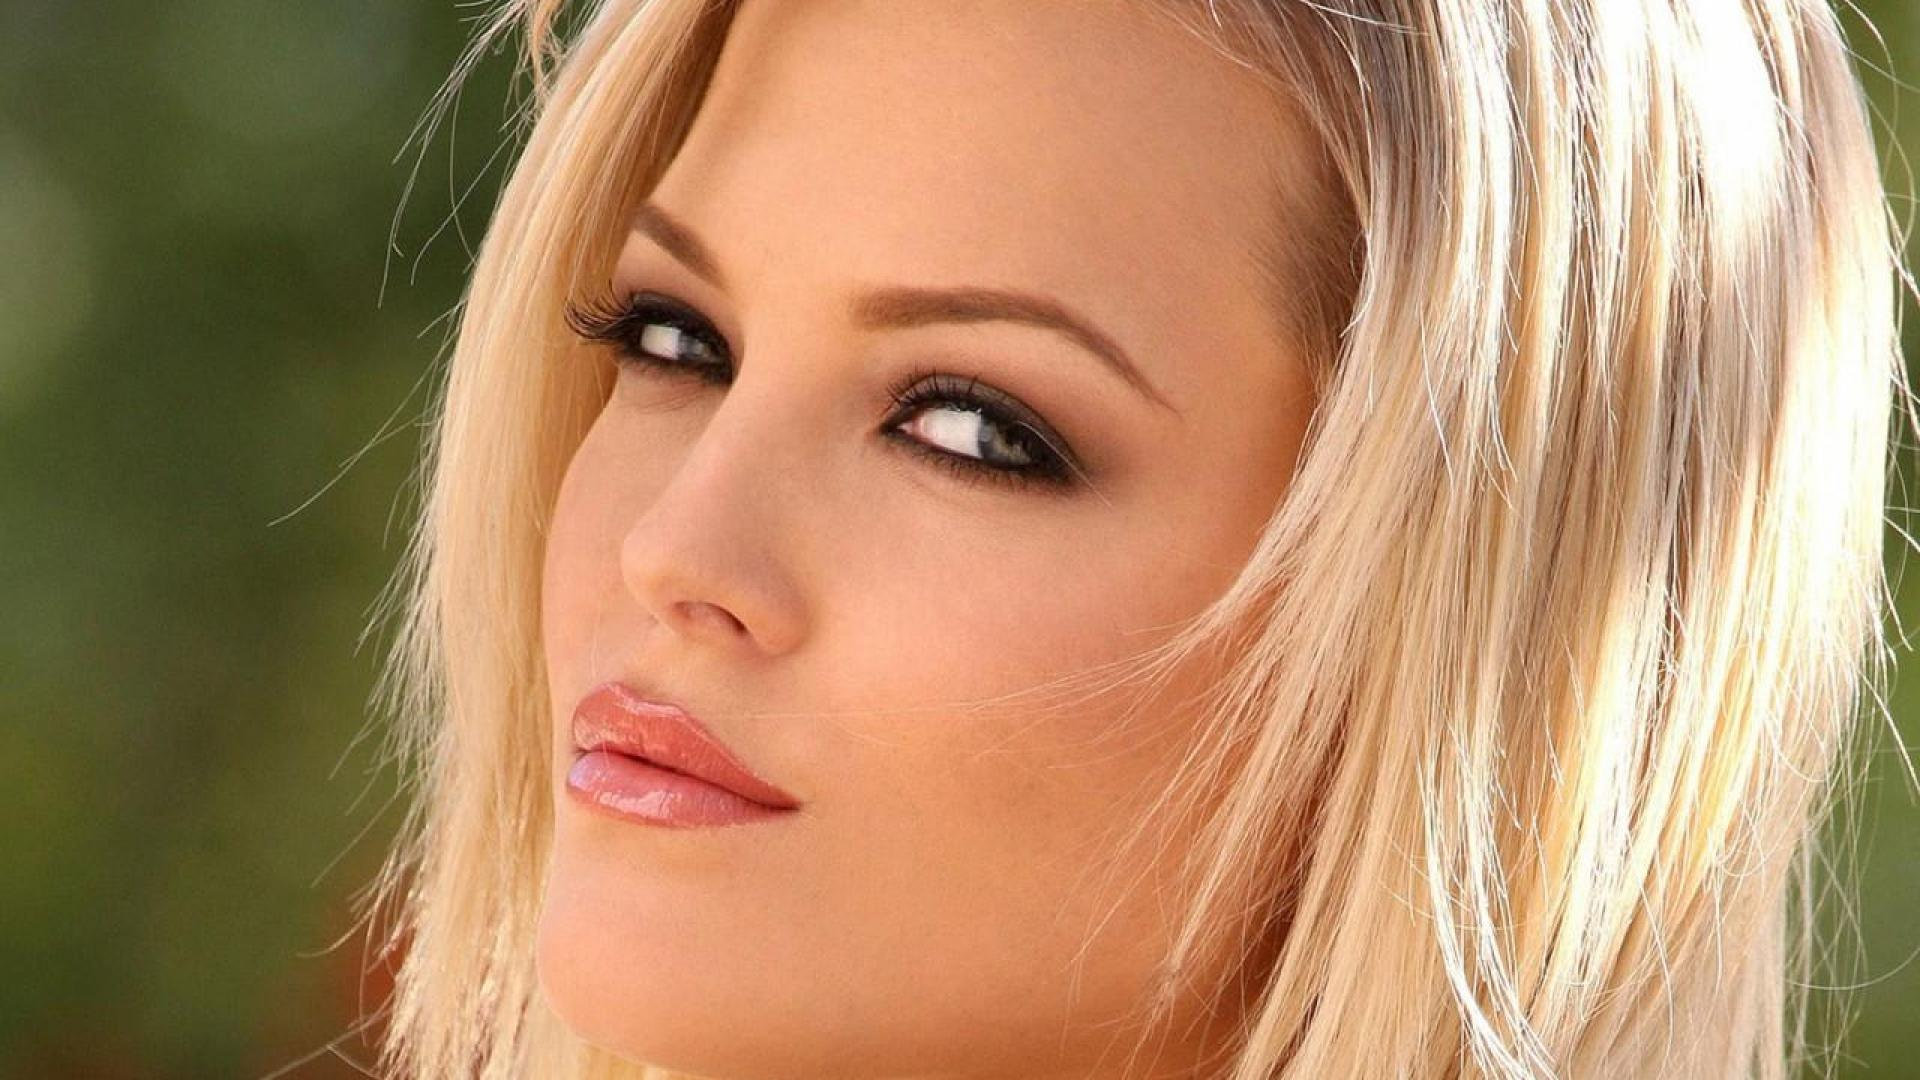 Alexis Texas HD Wallpaper